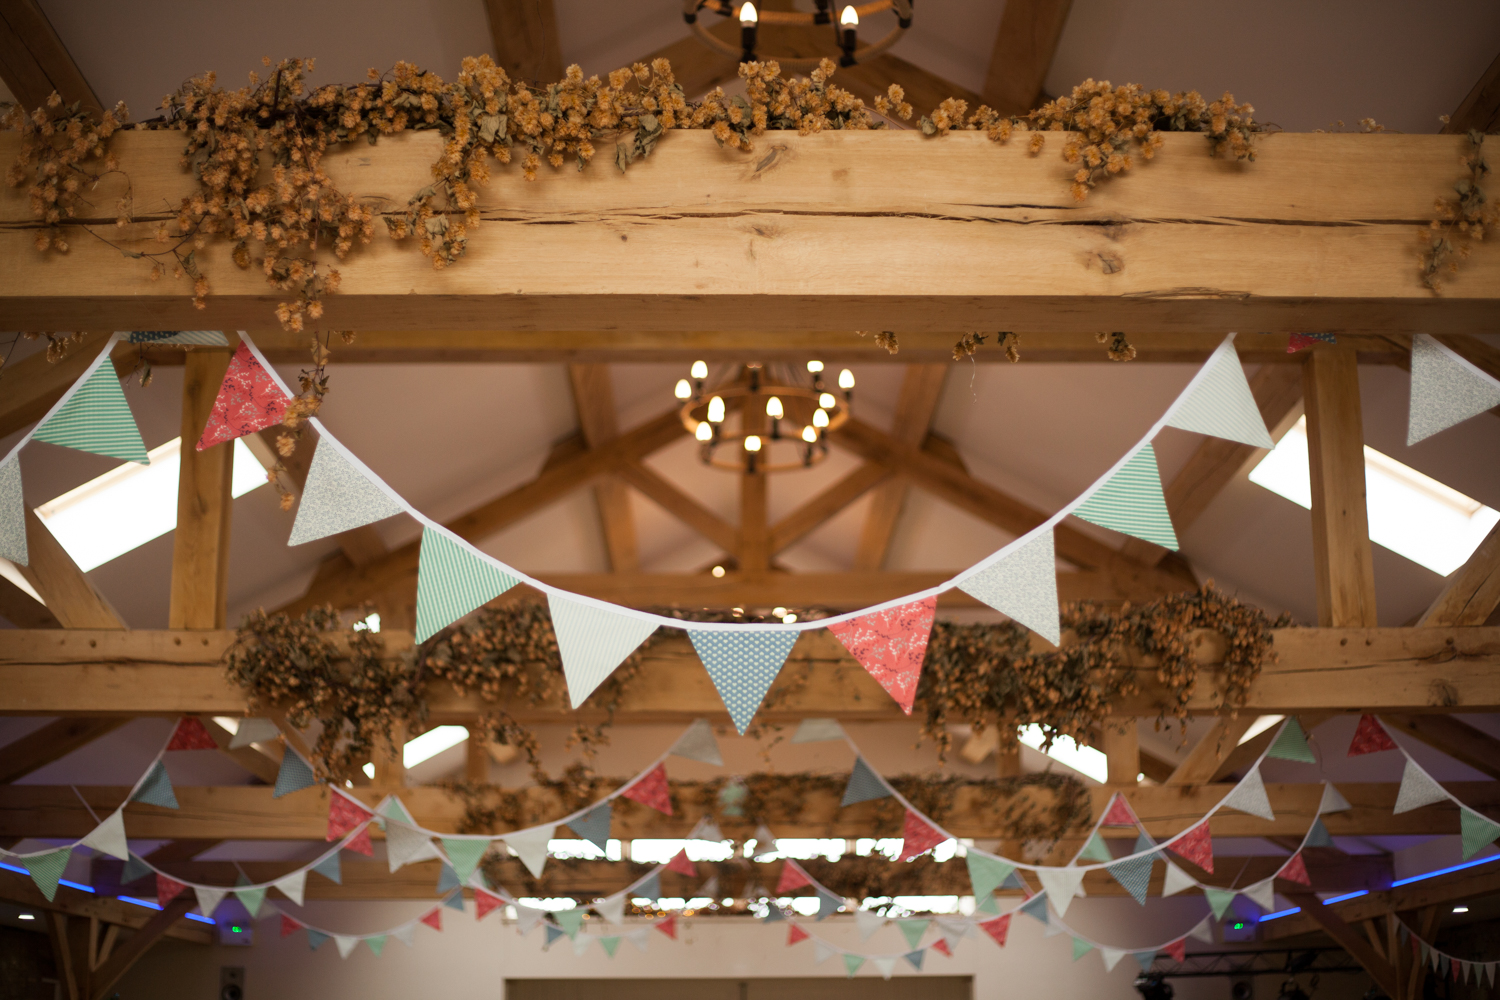 WEDDING_PICTORIAL_DOXFORD_BARNS_ALNWICK_BERWICK_SEASIDE_BUNTING_FARM-0491.jpg